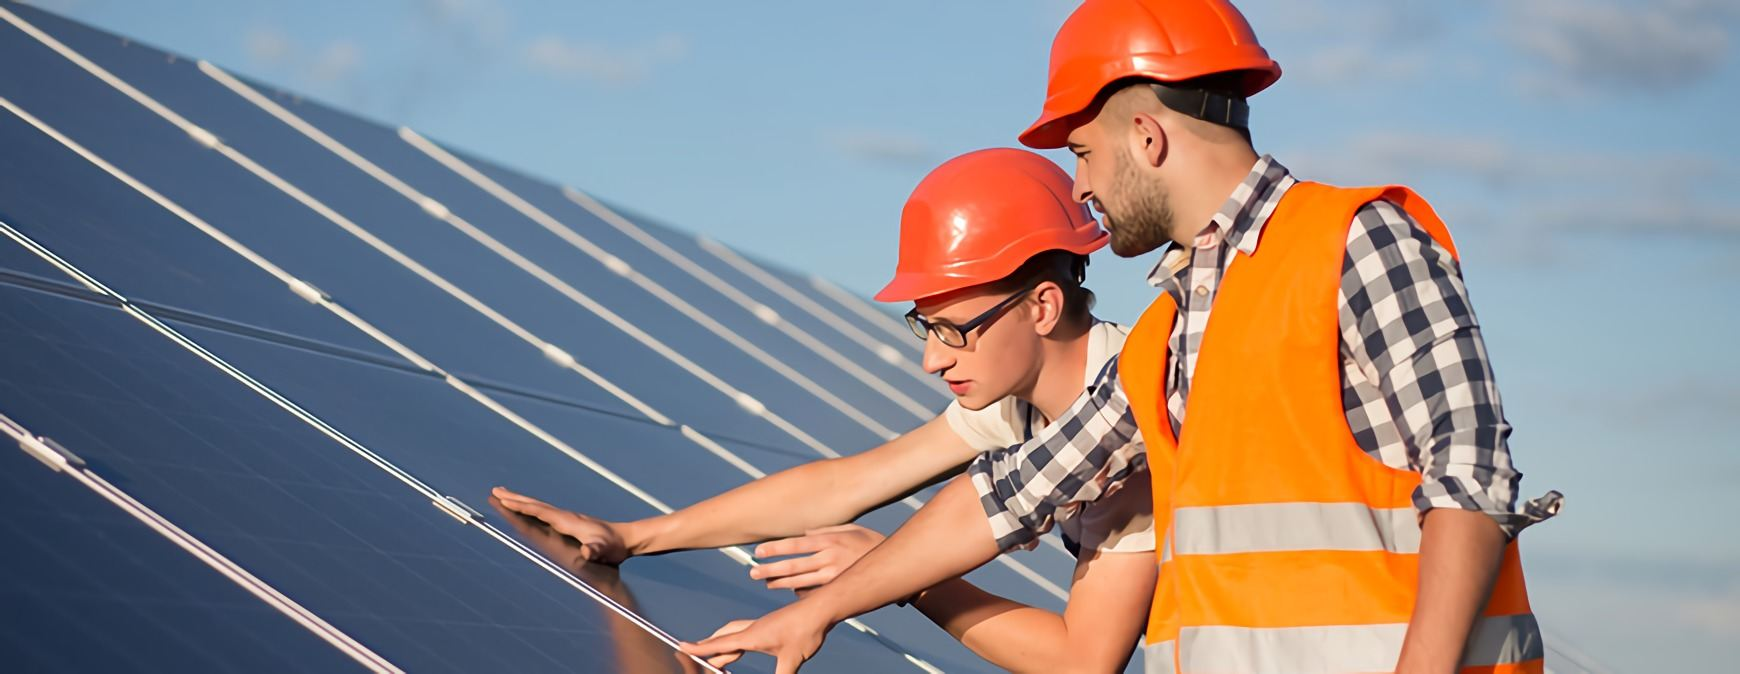 solar panel installation technicians